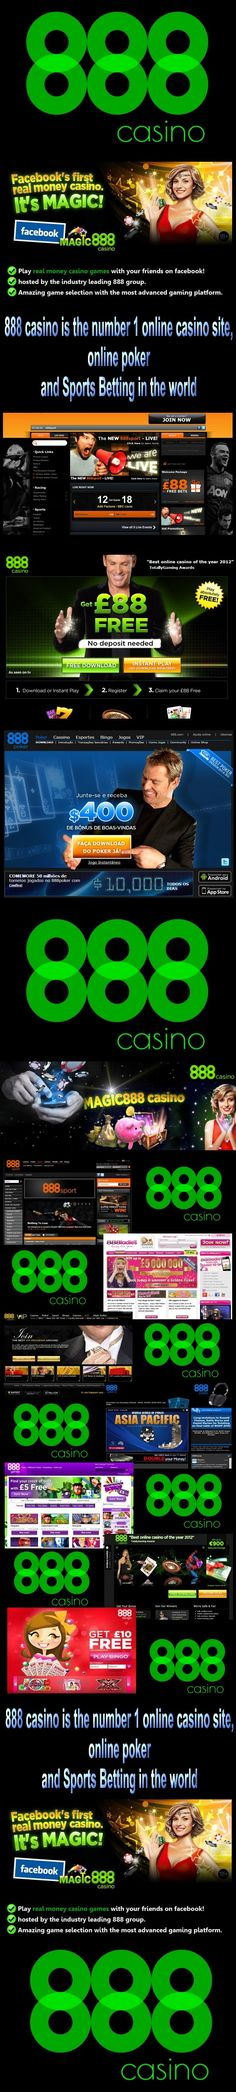 888 casino is the number 1 online casino site and online poker in the world. Many games, and many promotions and offers for you every day! Visit! And play now! >> http://8882.p.ht/